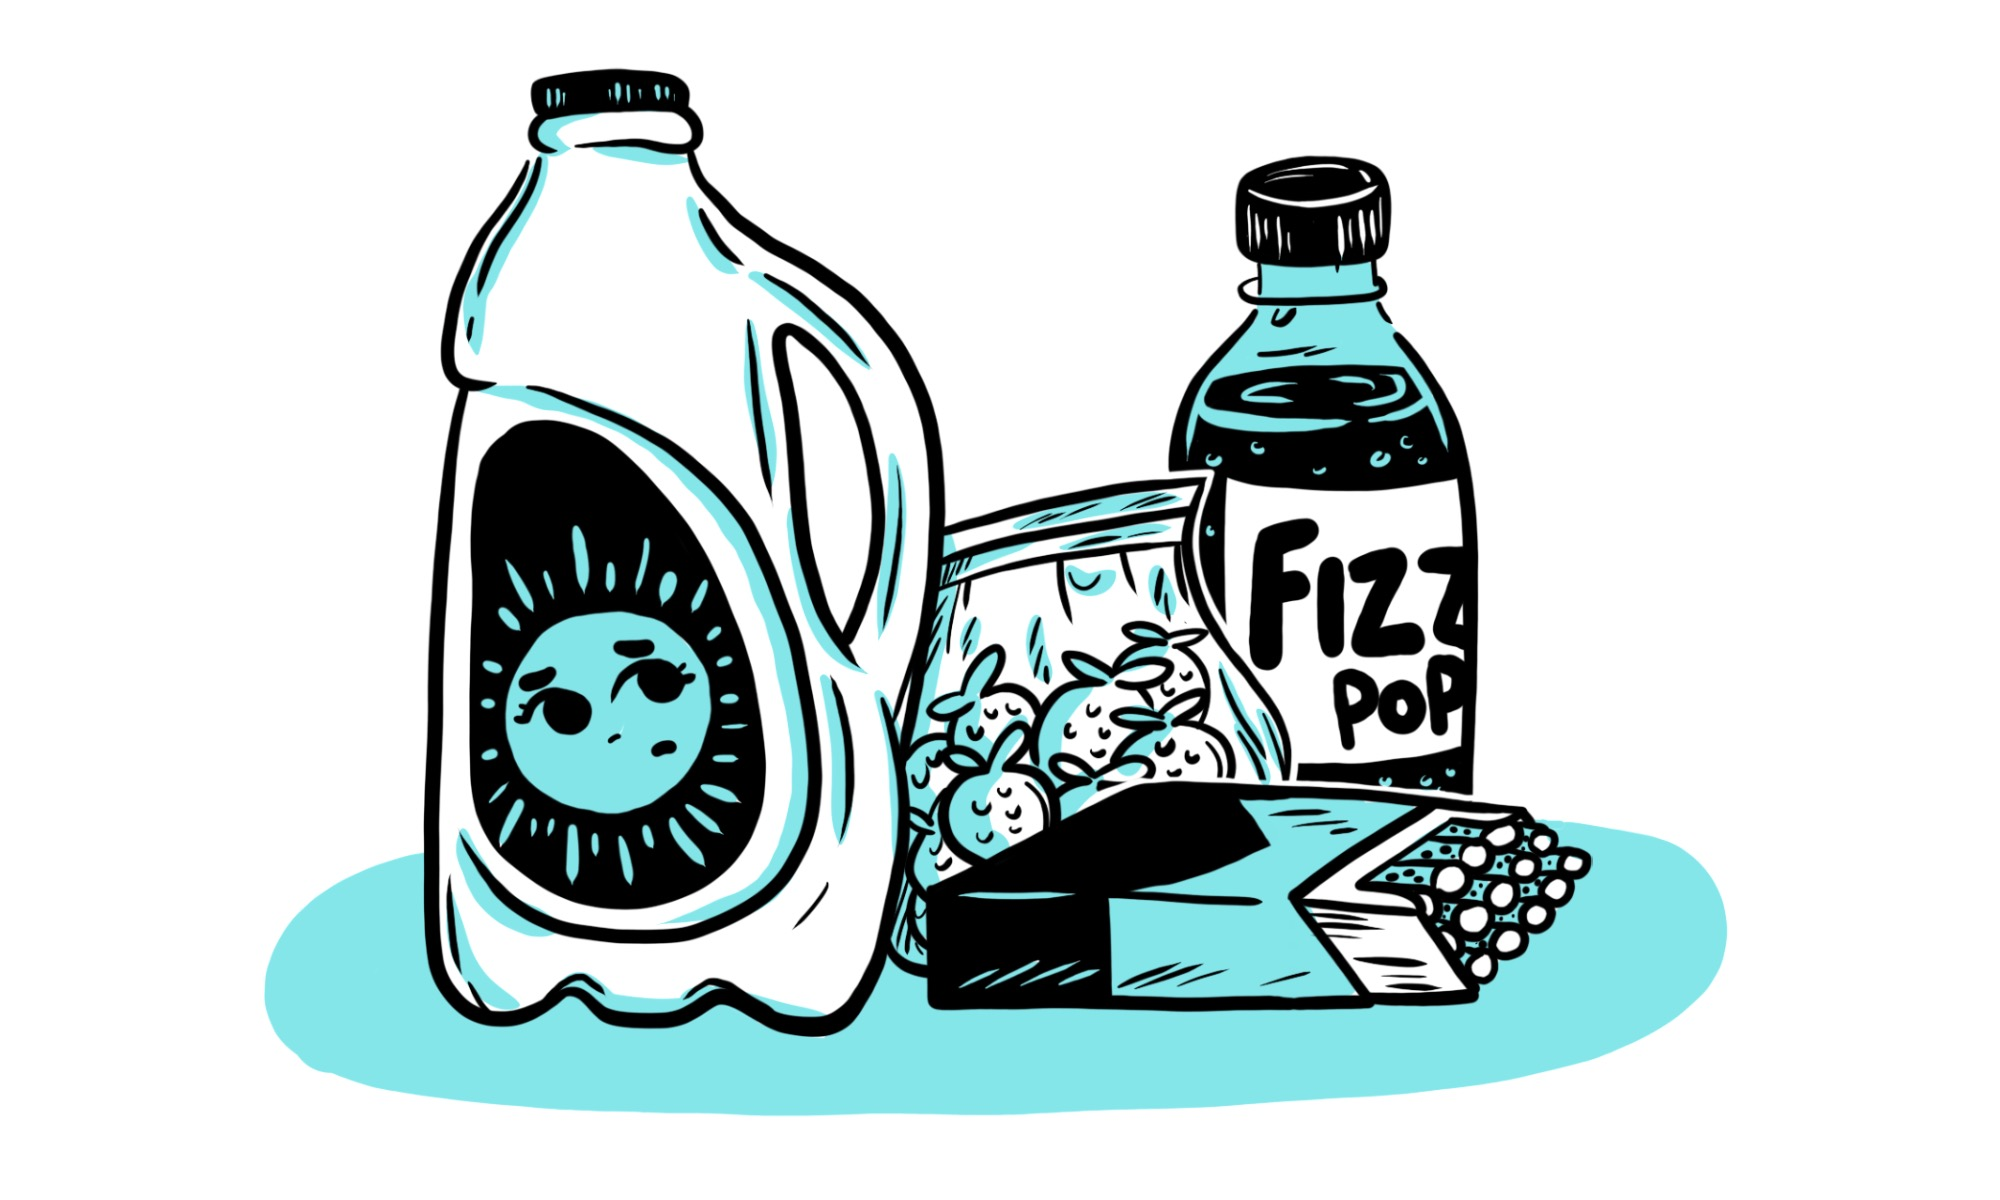 An illustration of common goods from a dairy: milk, lollies, fizzy drink, cigarettes. Illustration by Pepper Curry